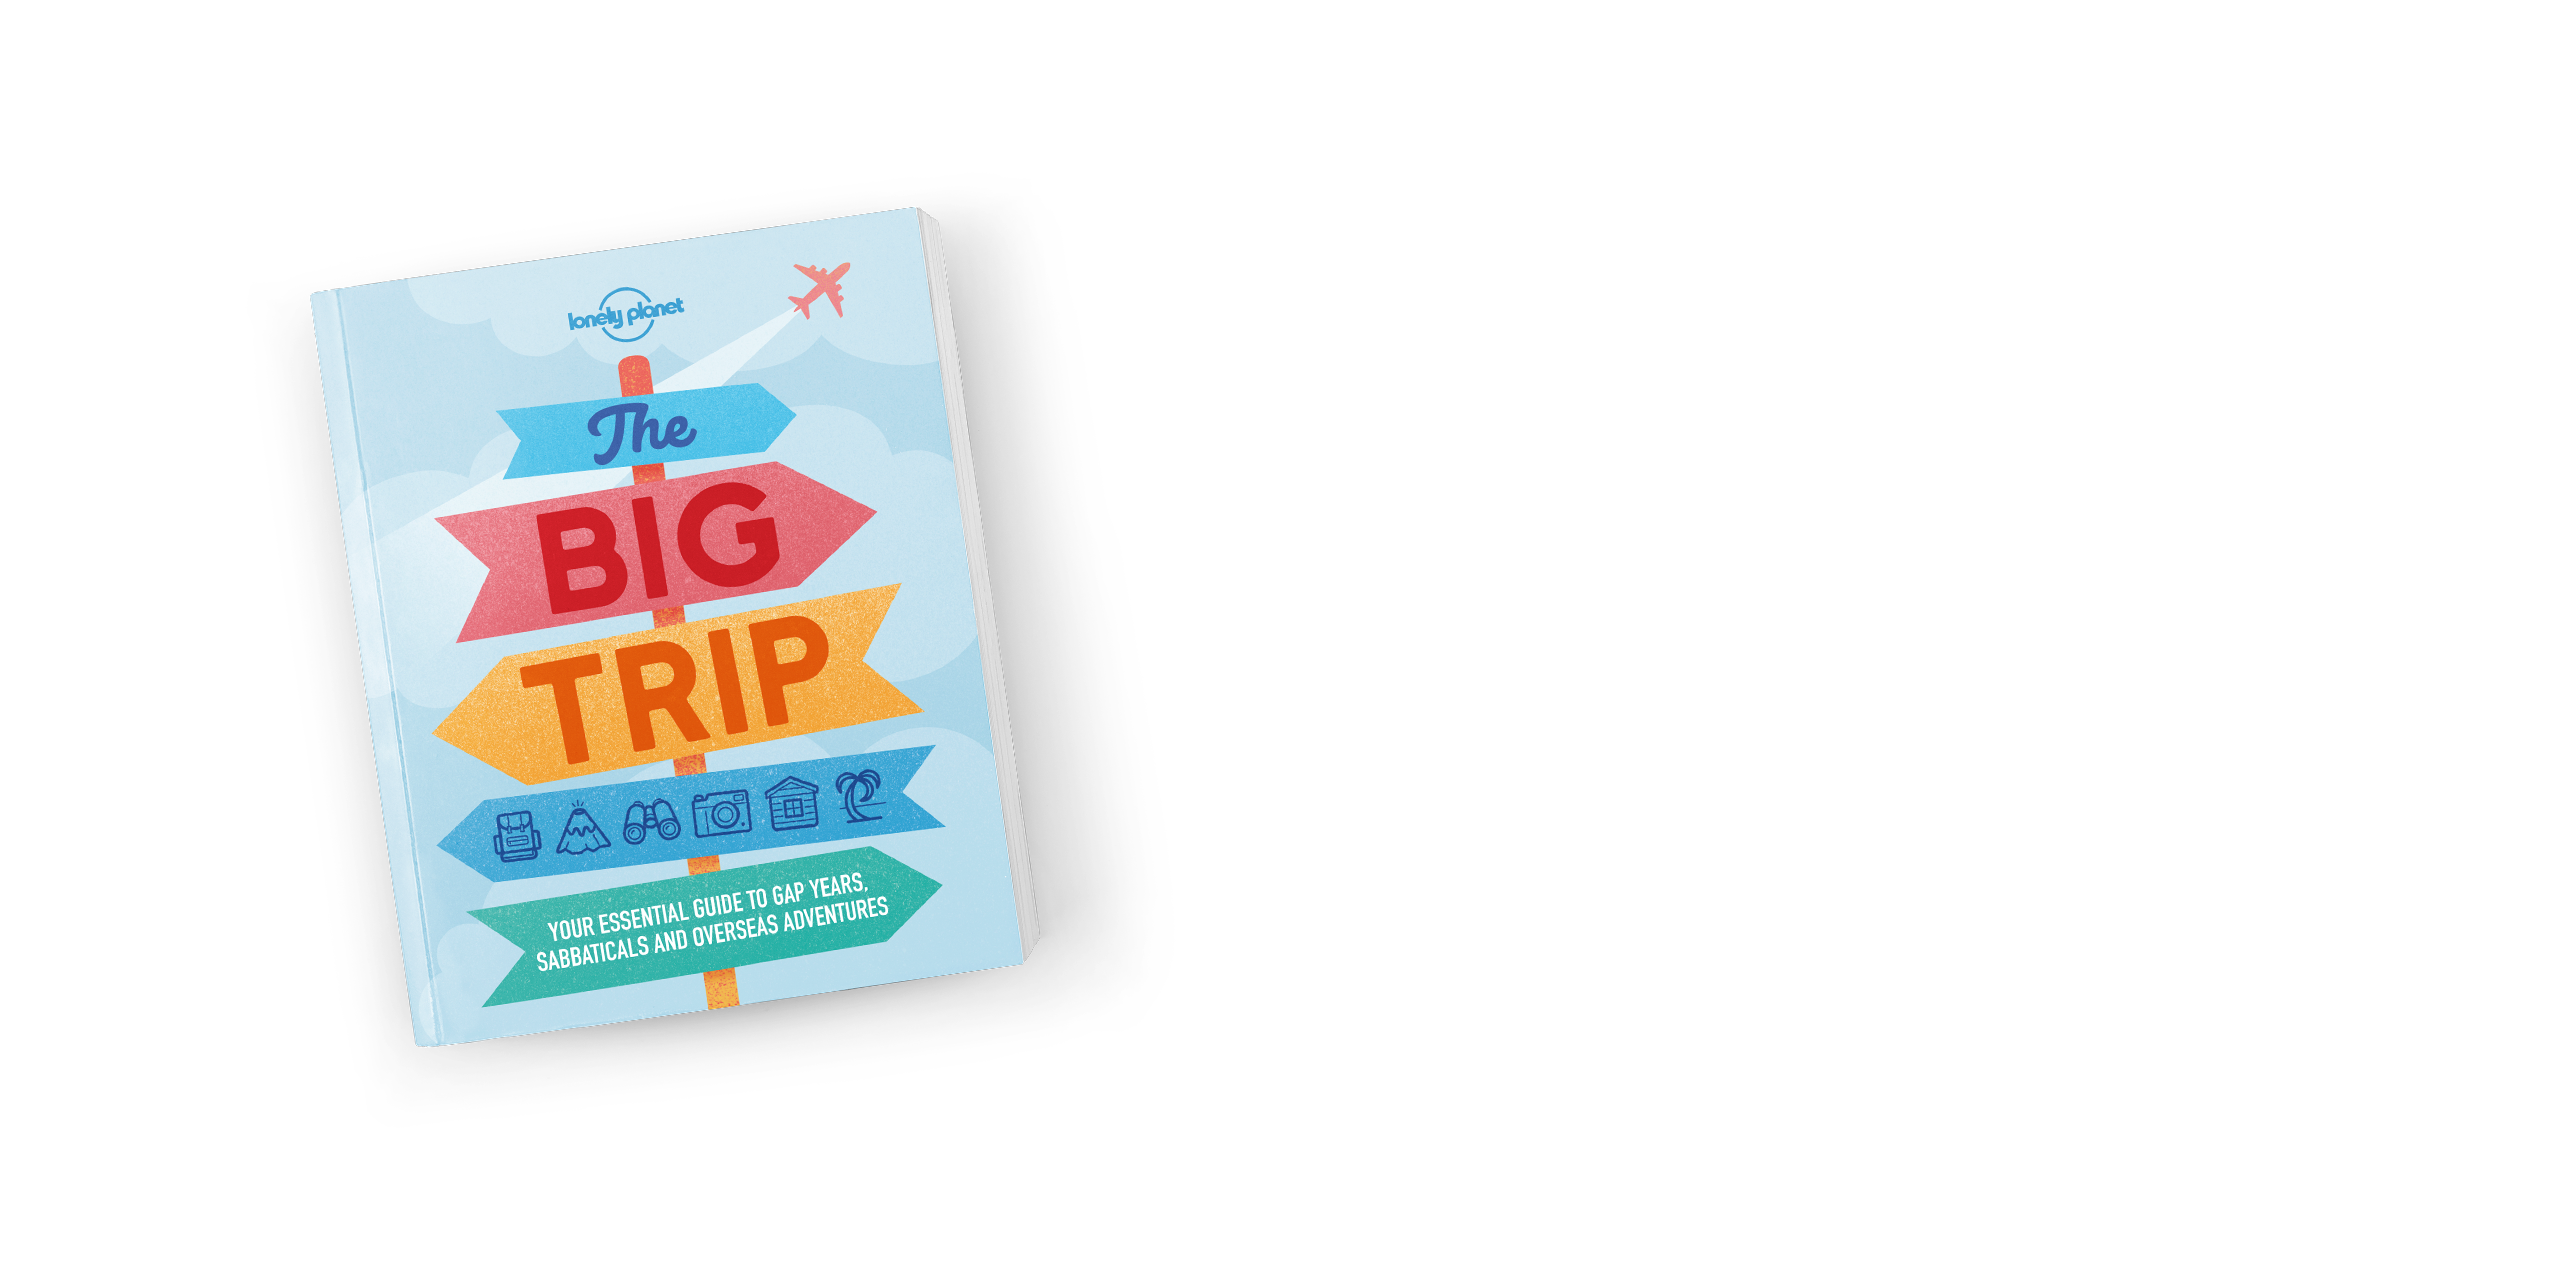 The Big Trip: Updated edition out now!